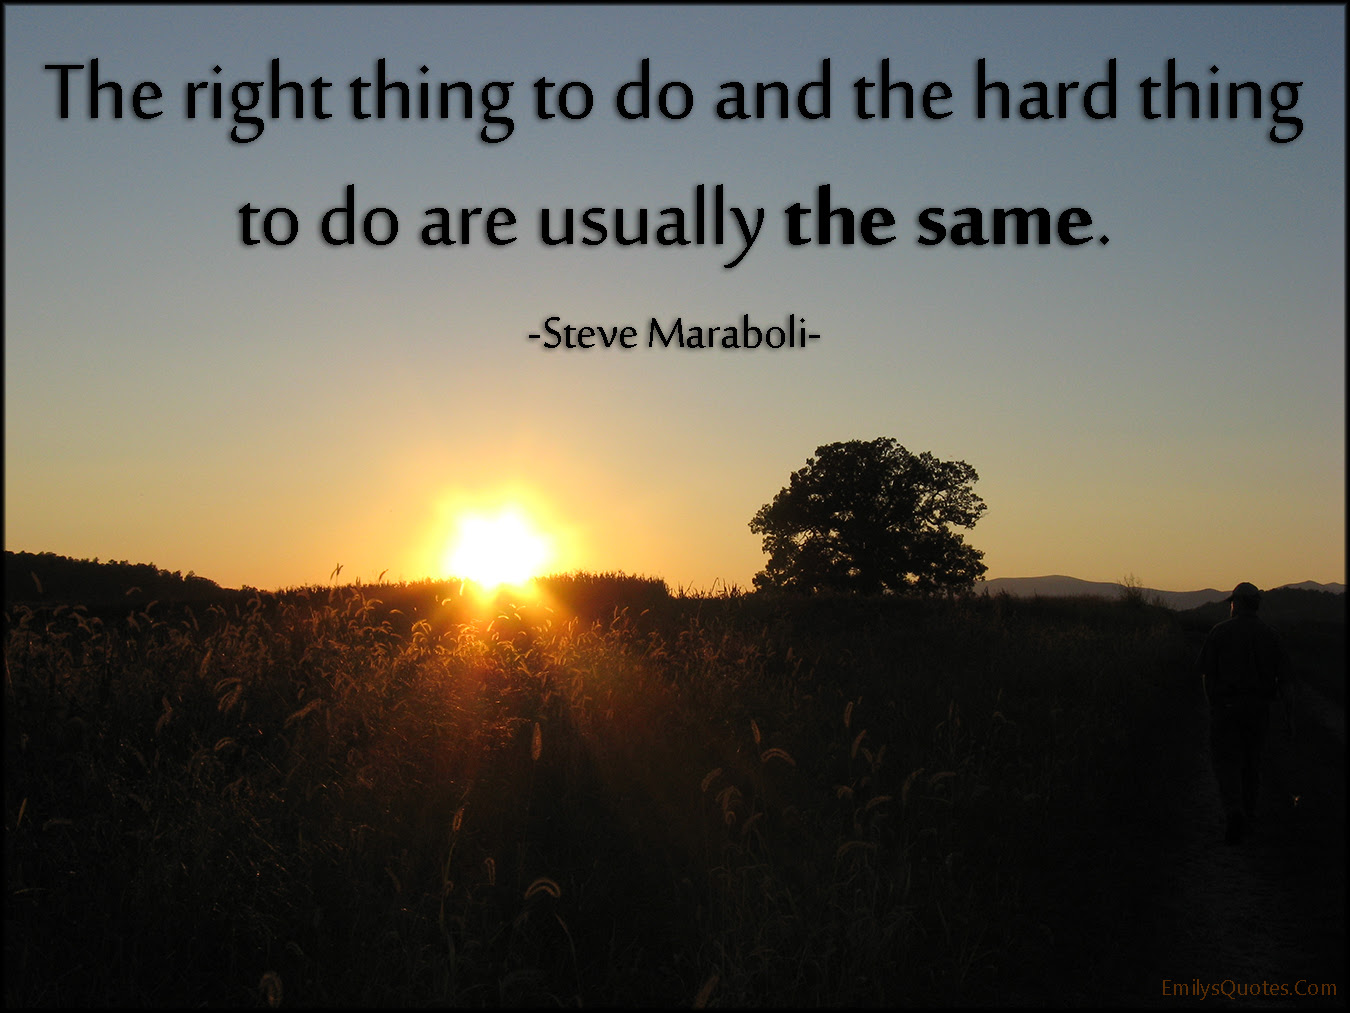 The Right Thing To Do And The Hard Thing To Do Are Usually The Same